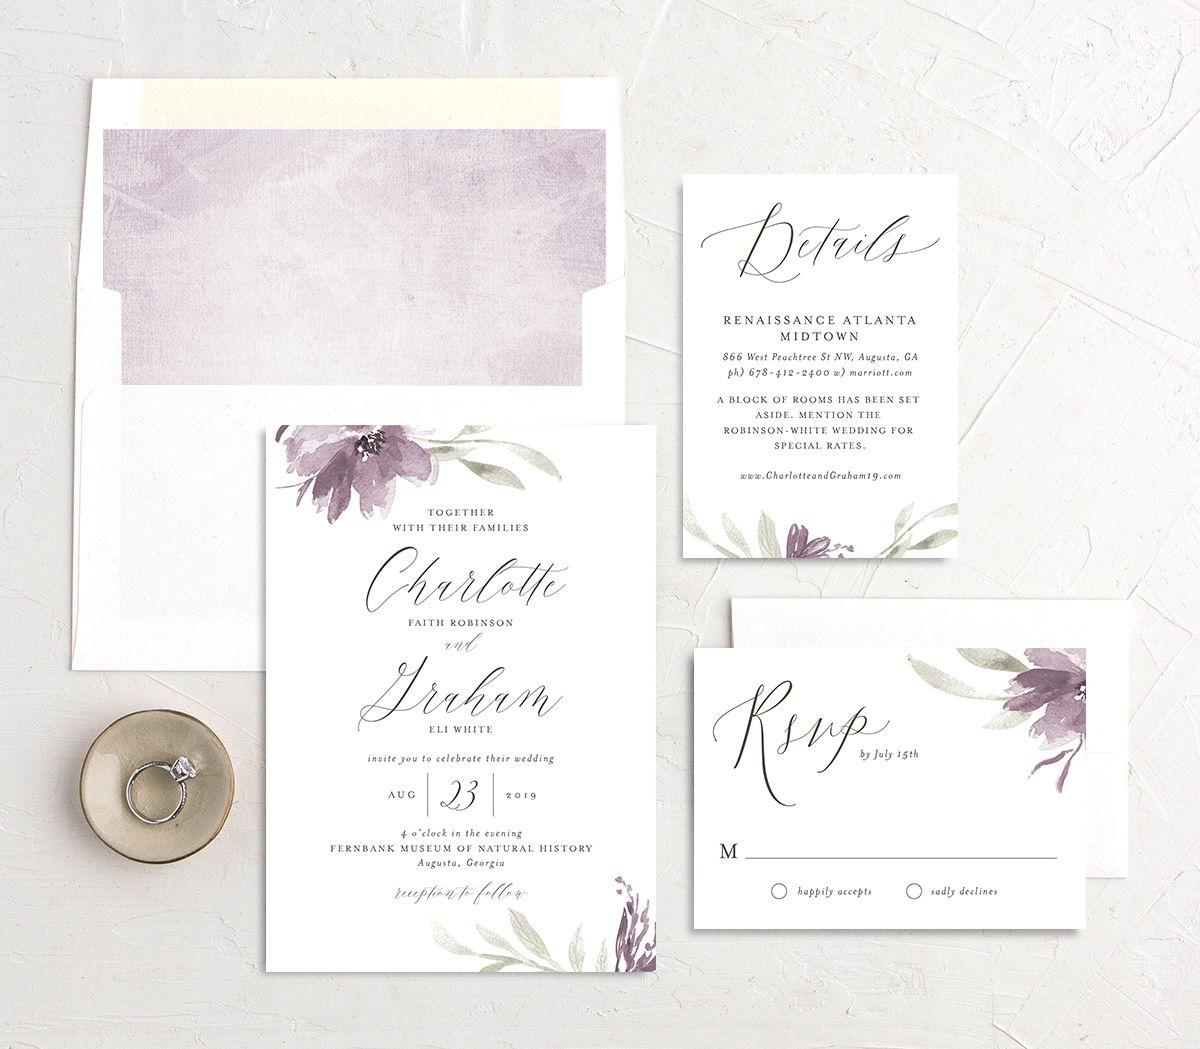 muted floral wedding invitation stationery suite in purple